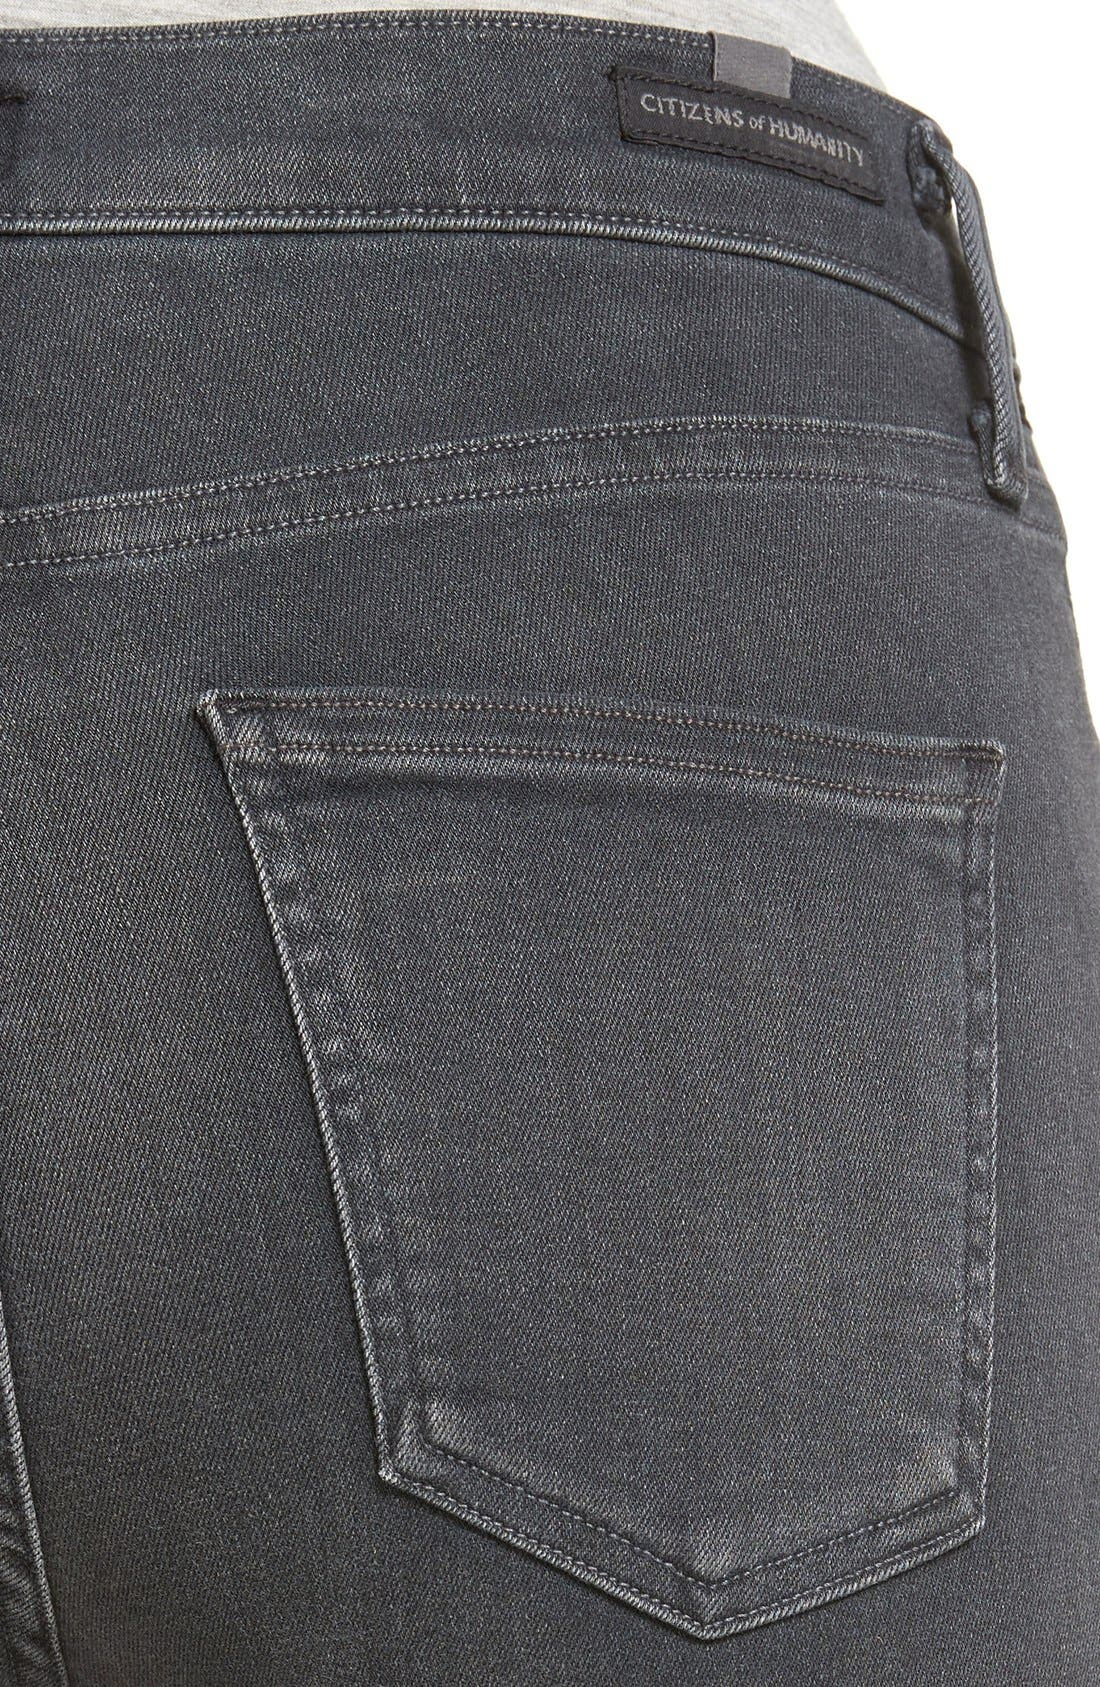 Alternate Image 4  - Citizens of Humanity Rocket High Waist Crop Skinny Jeans (Chateau)